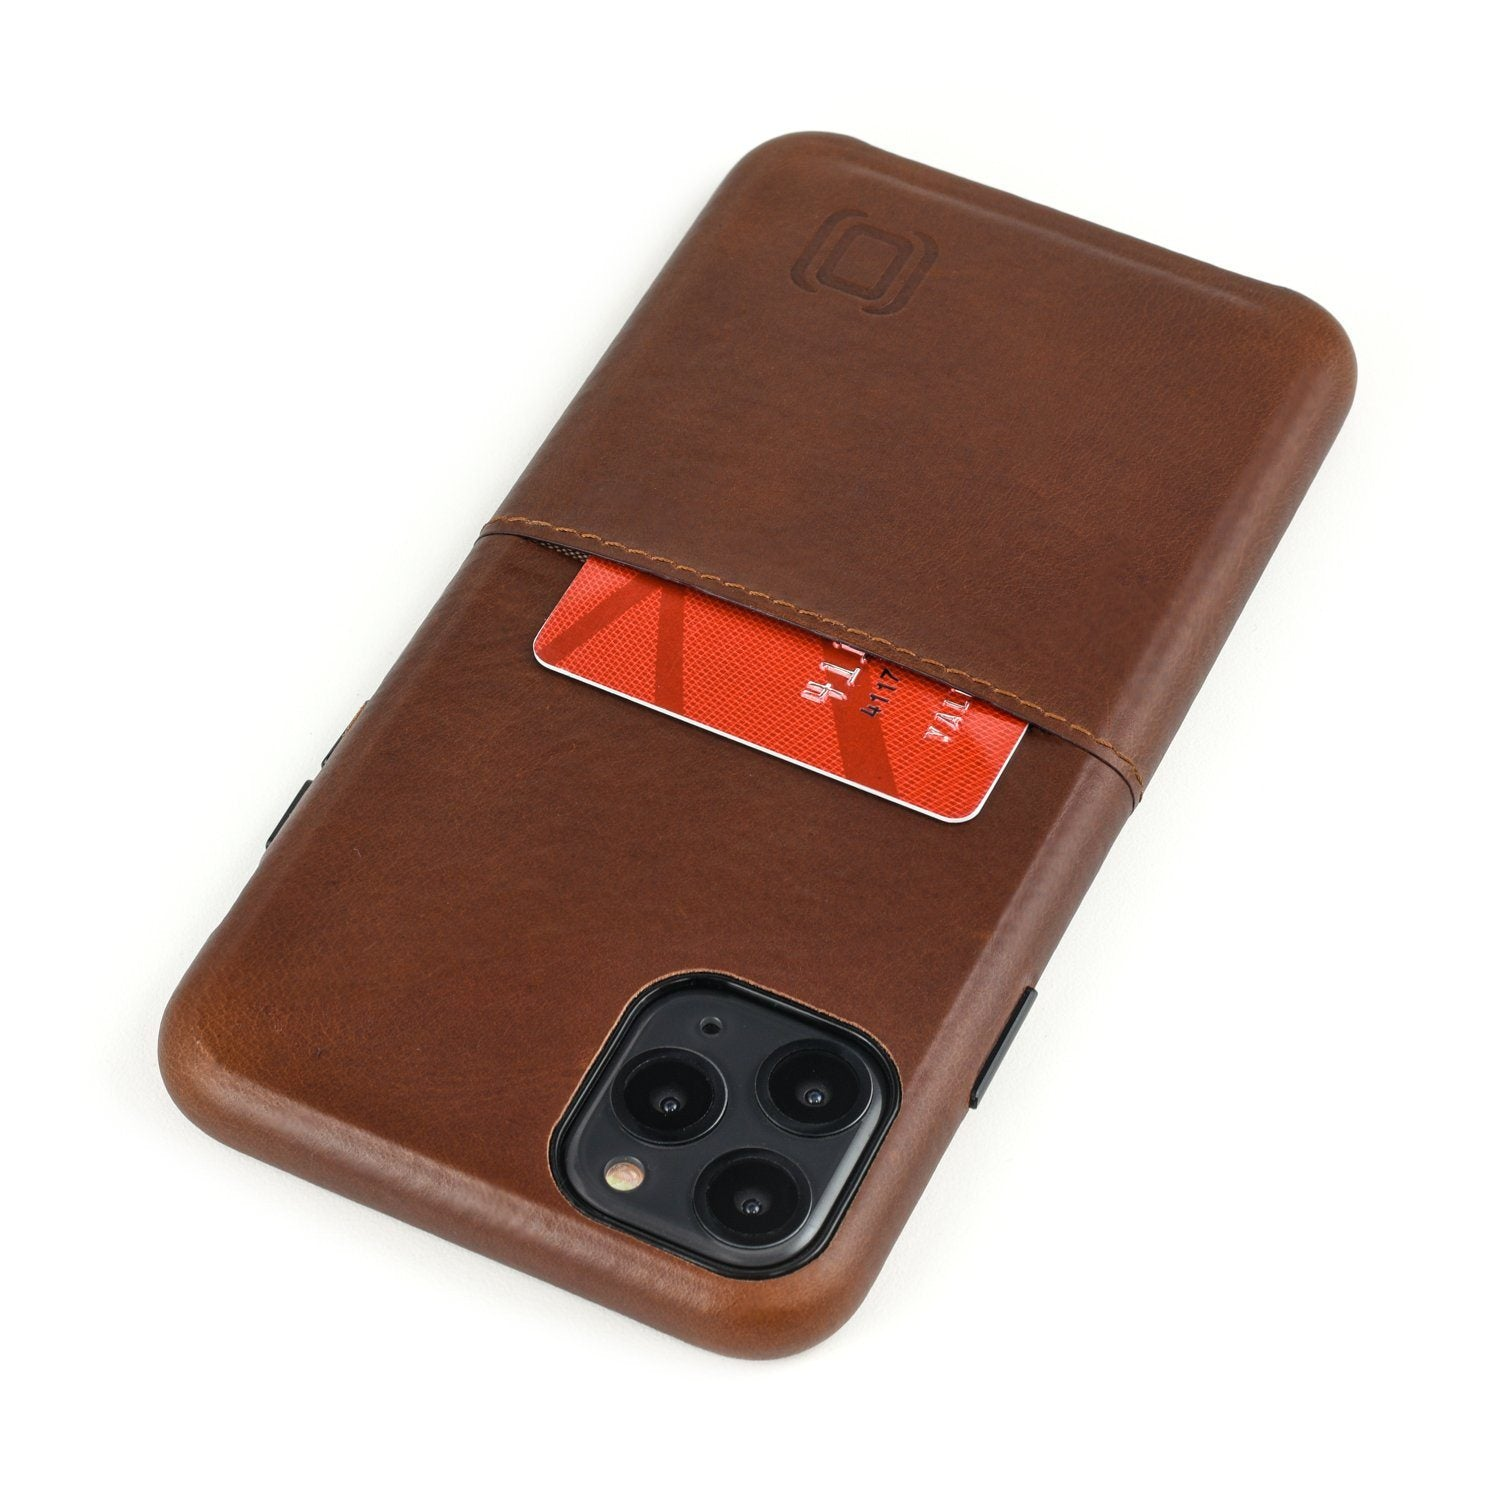 Virtuosa M1 Genuine Leather Card Case with 1 Lay-Flat Card Slot - iPhone iPhone Case Dockem iPhone 11 Pro Max Brown Virtuosa